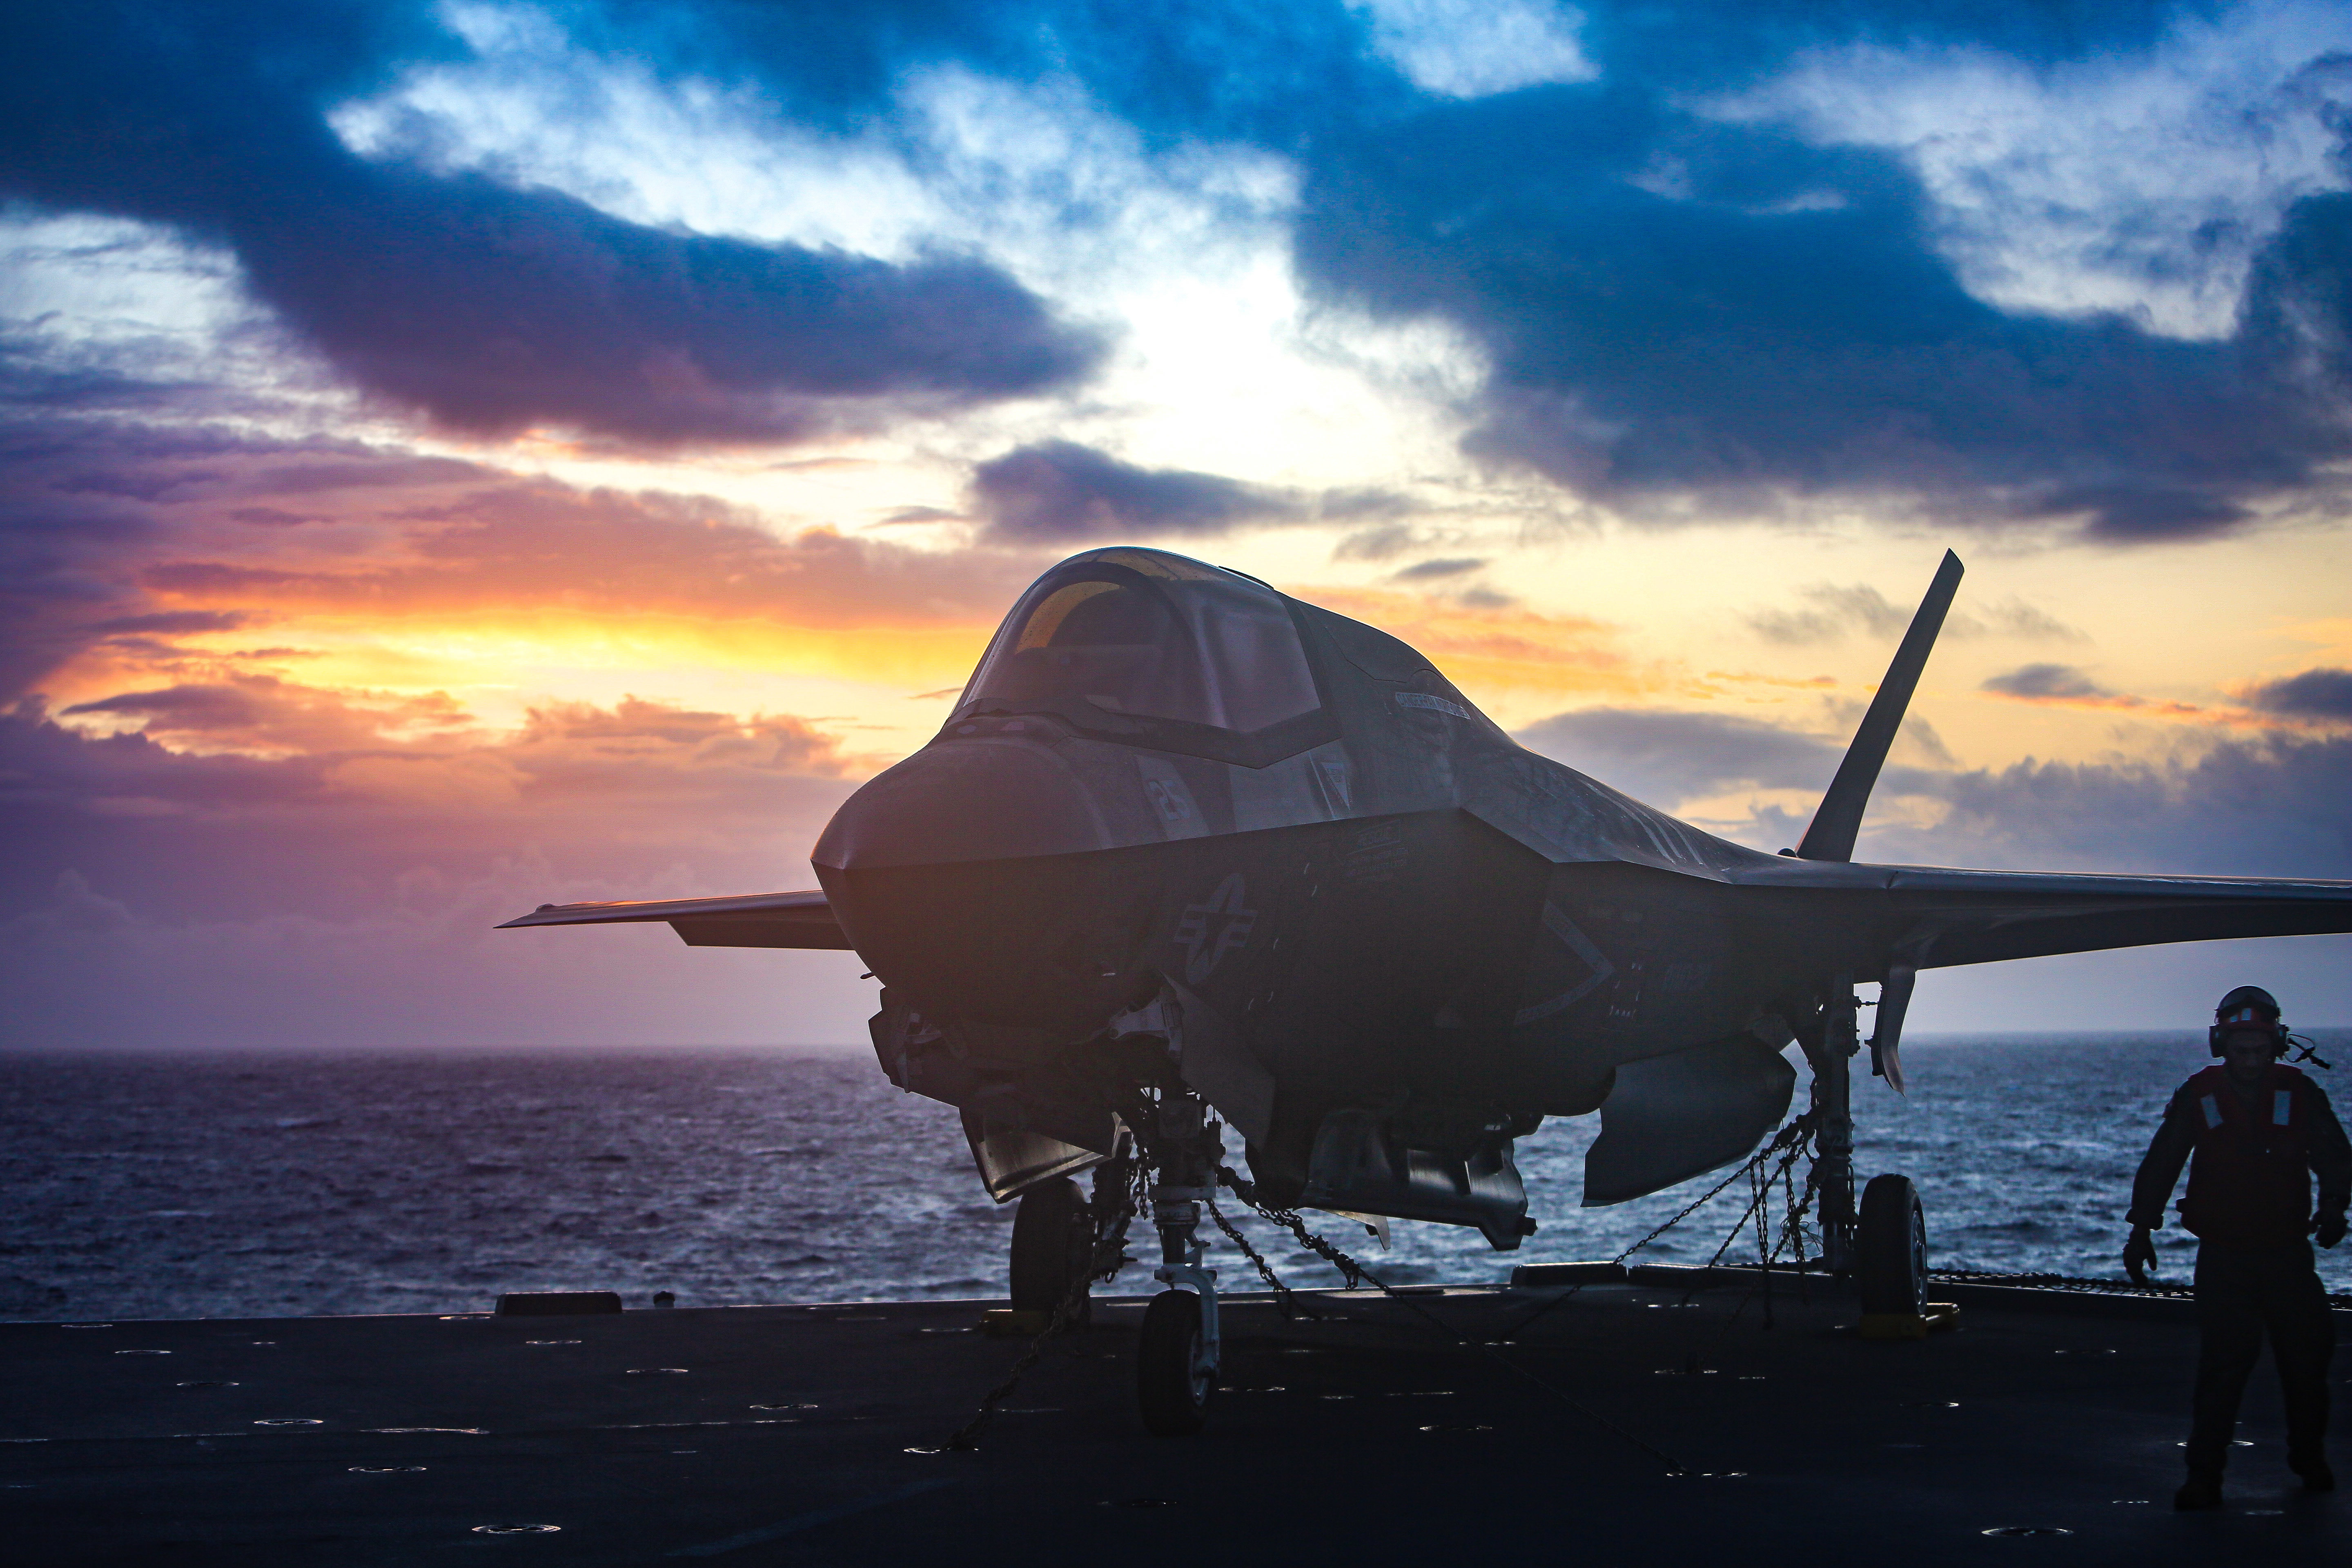 Key F-35 simulator tests won't occur this year and have been pushed to 2021. (1st Lt. Zachary Bodner/U.S. Marine Corps)